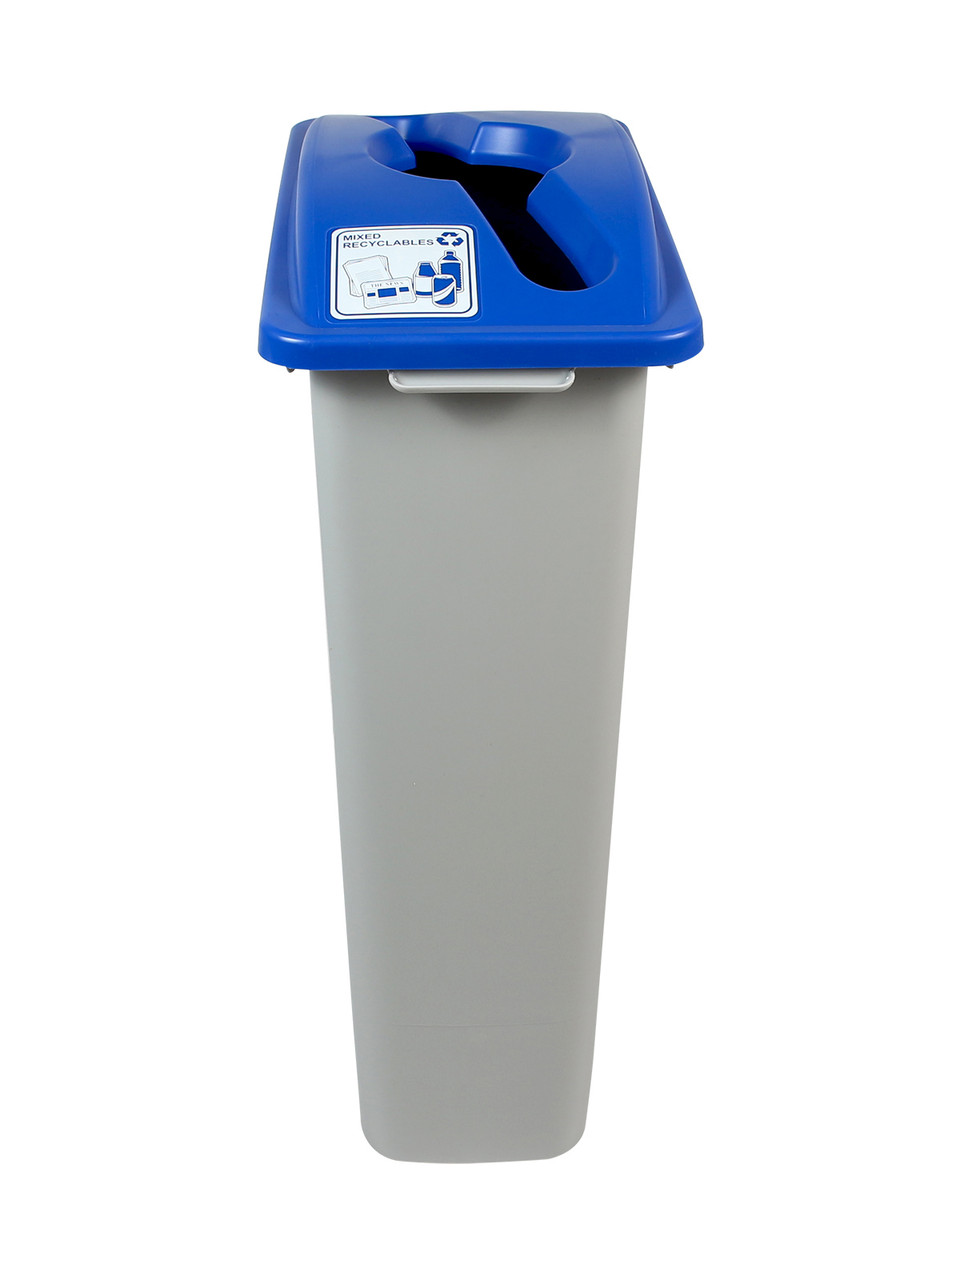 23 Gallon Simple Sort Recycle Bin (Mixed Recyclables)